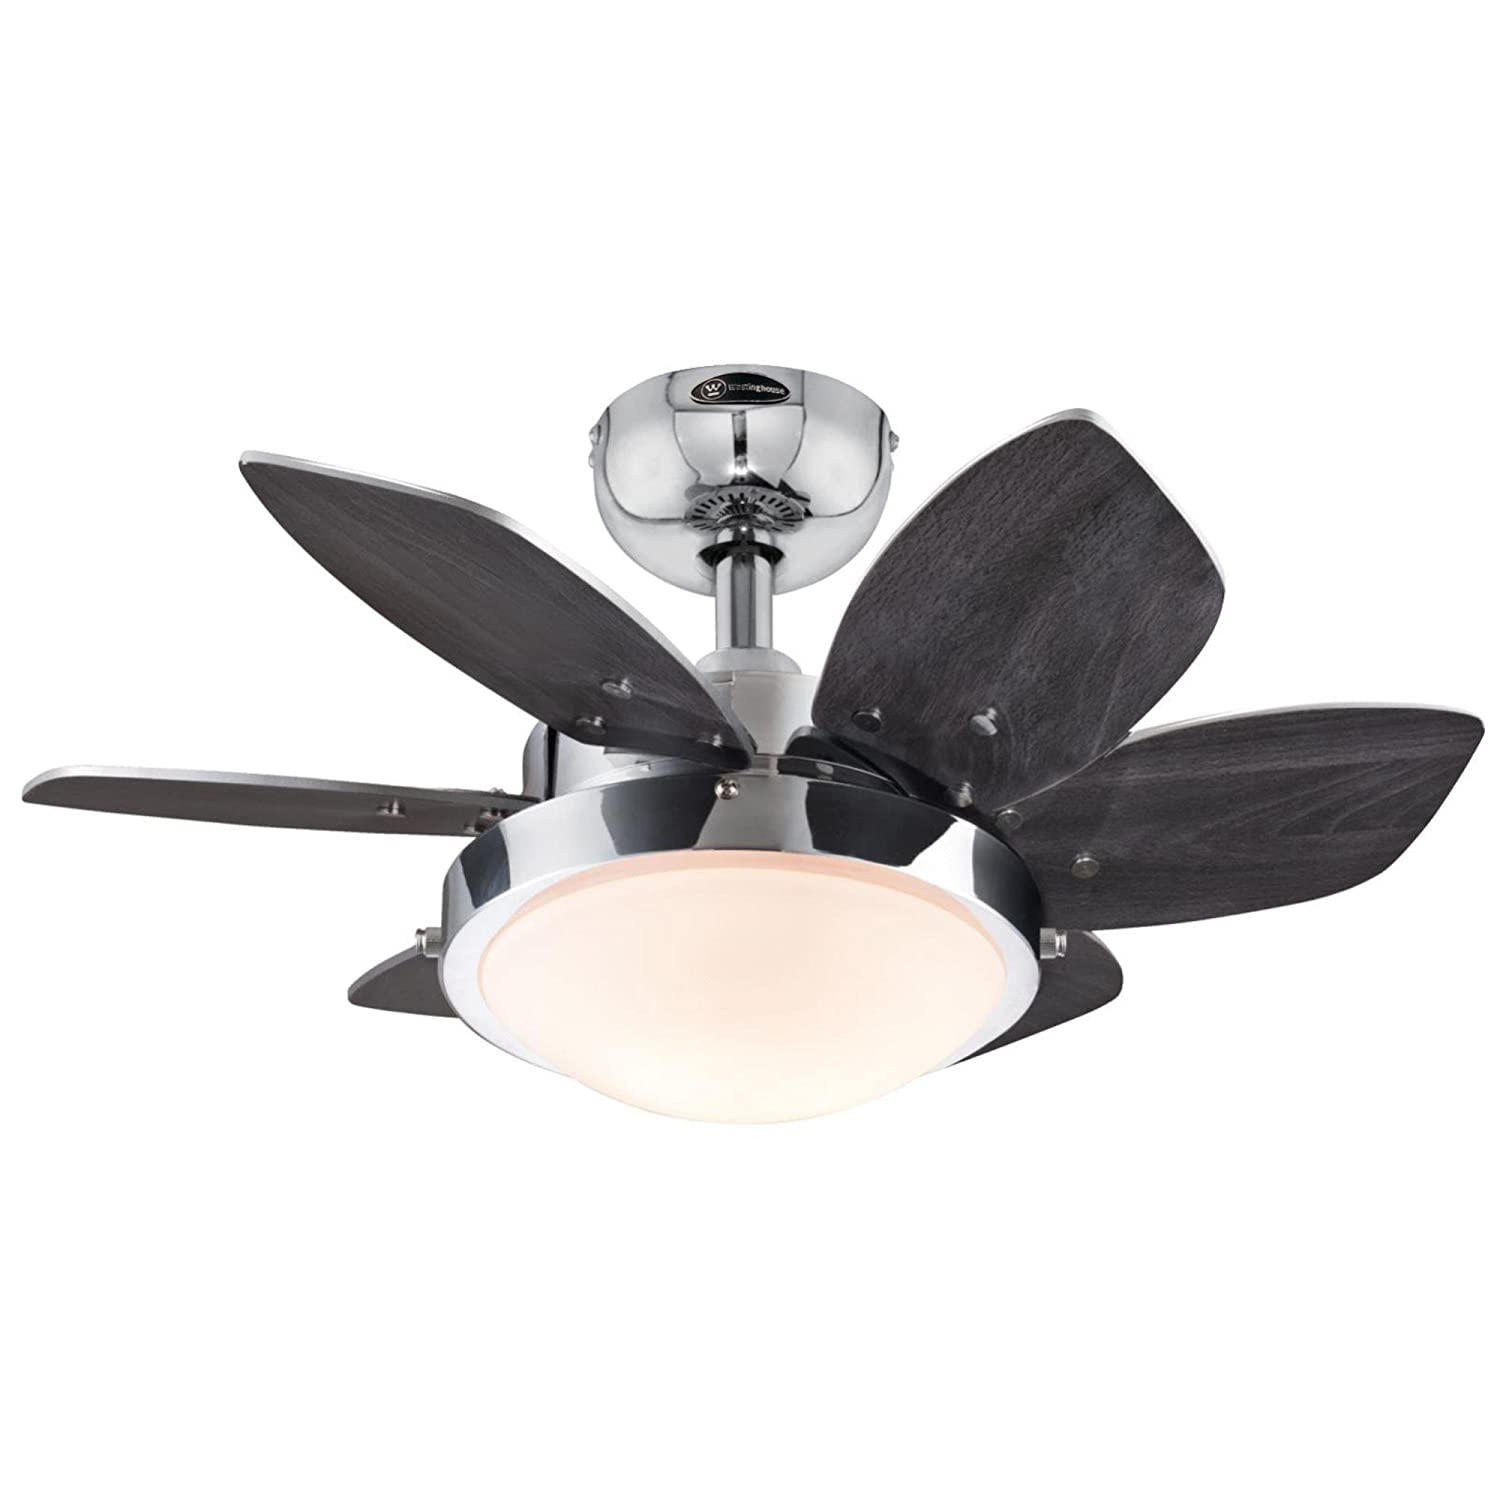 Westinghouse 7863100 Quince 24 Inch Chrome Indoor Ceiling Fan Light White Low Profile 42 Wiring Diagram Model Kit With Opal Frosted Glass